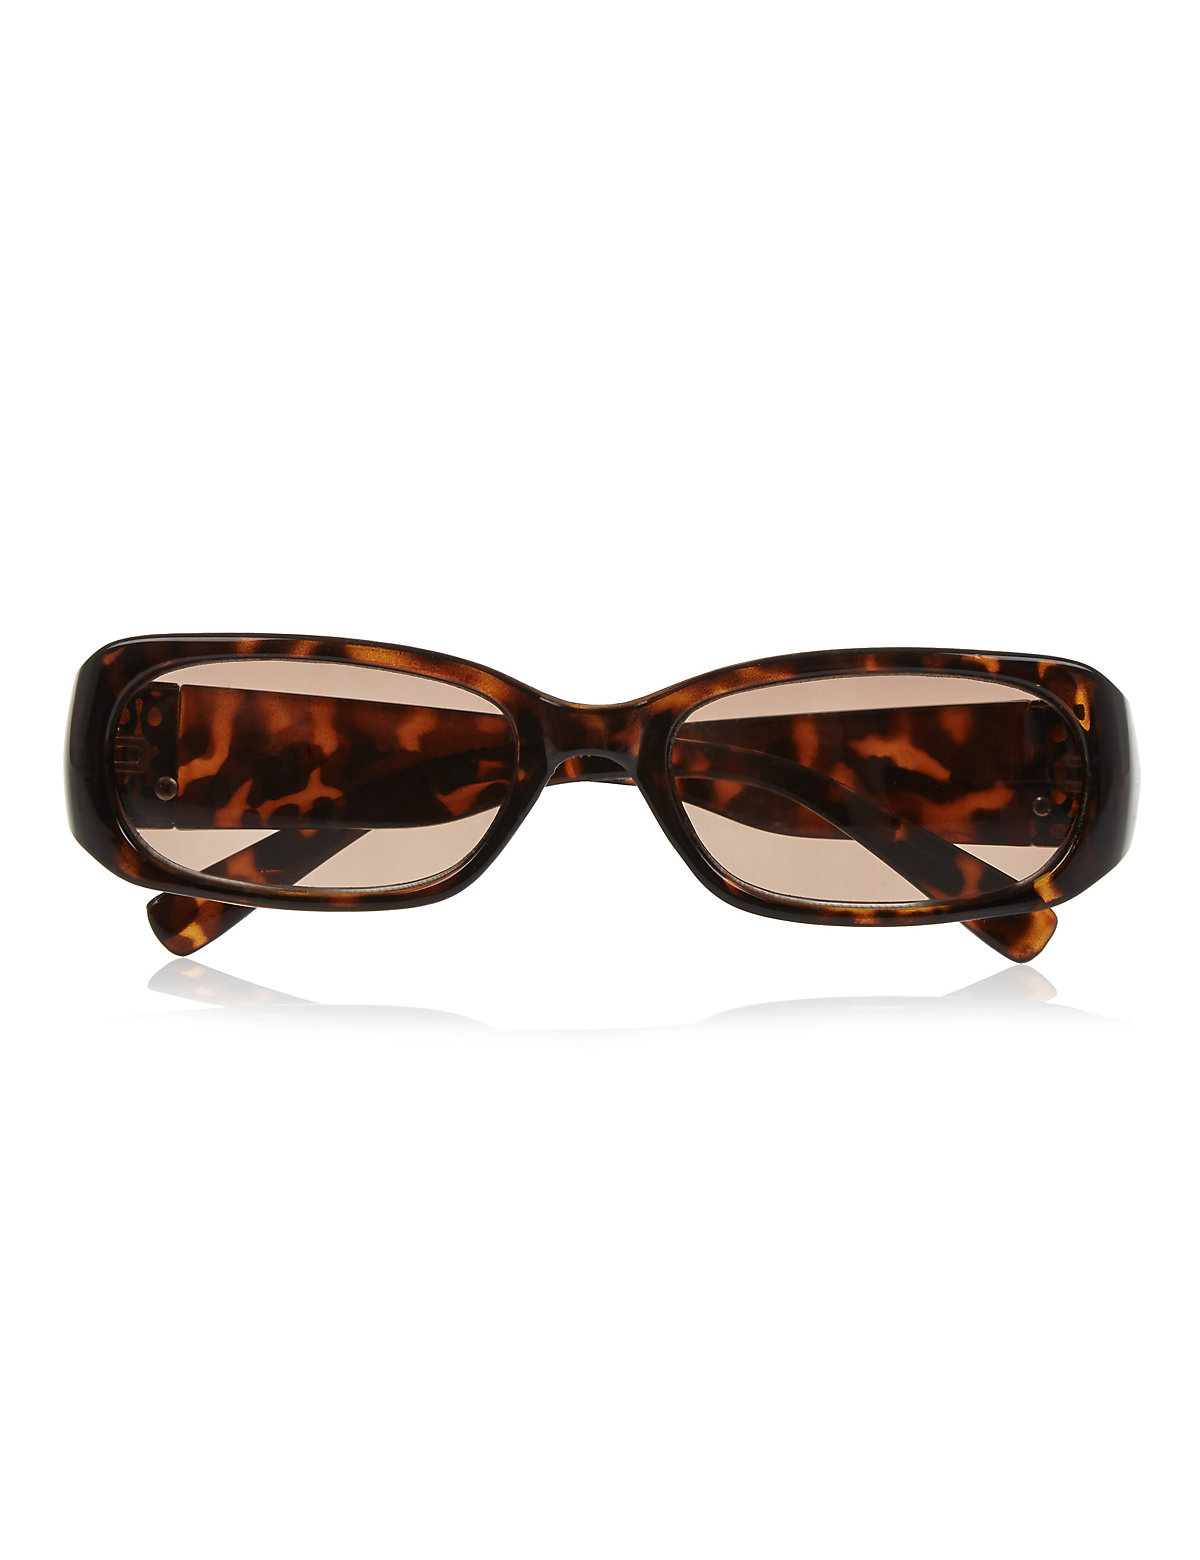 Large Mock Tortoiseshell Reading Sunglasses Brown 2